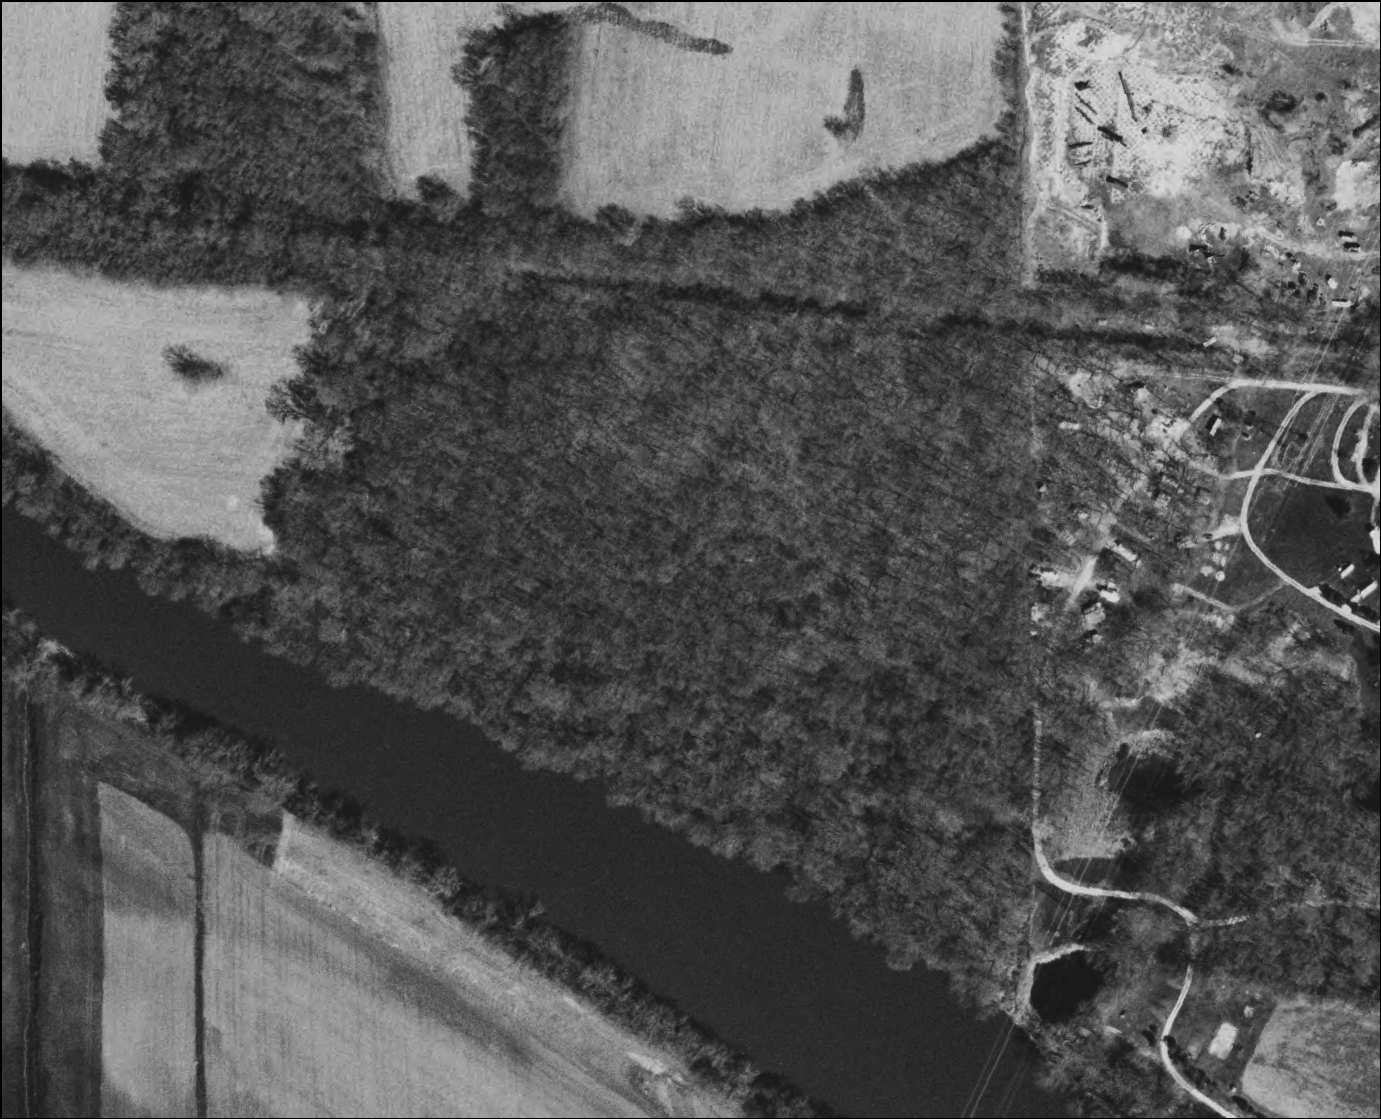 Aerial image of the Shirland site locale